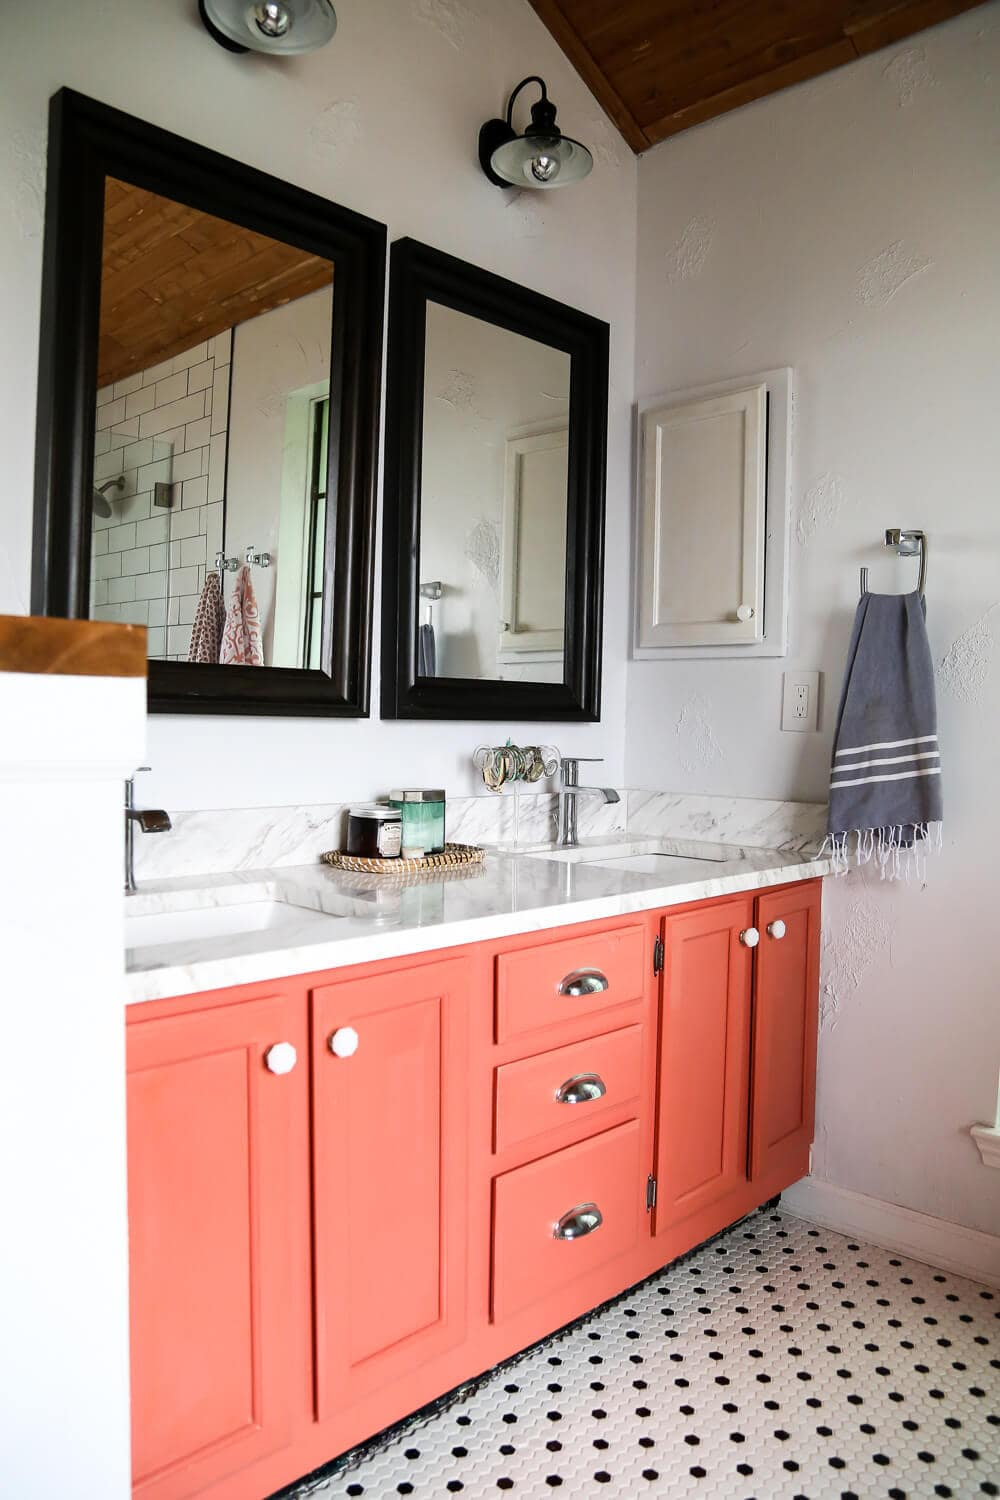 A Master Bathroom Remodel With A Coral Vanity And Black And White Hex Tile  On The